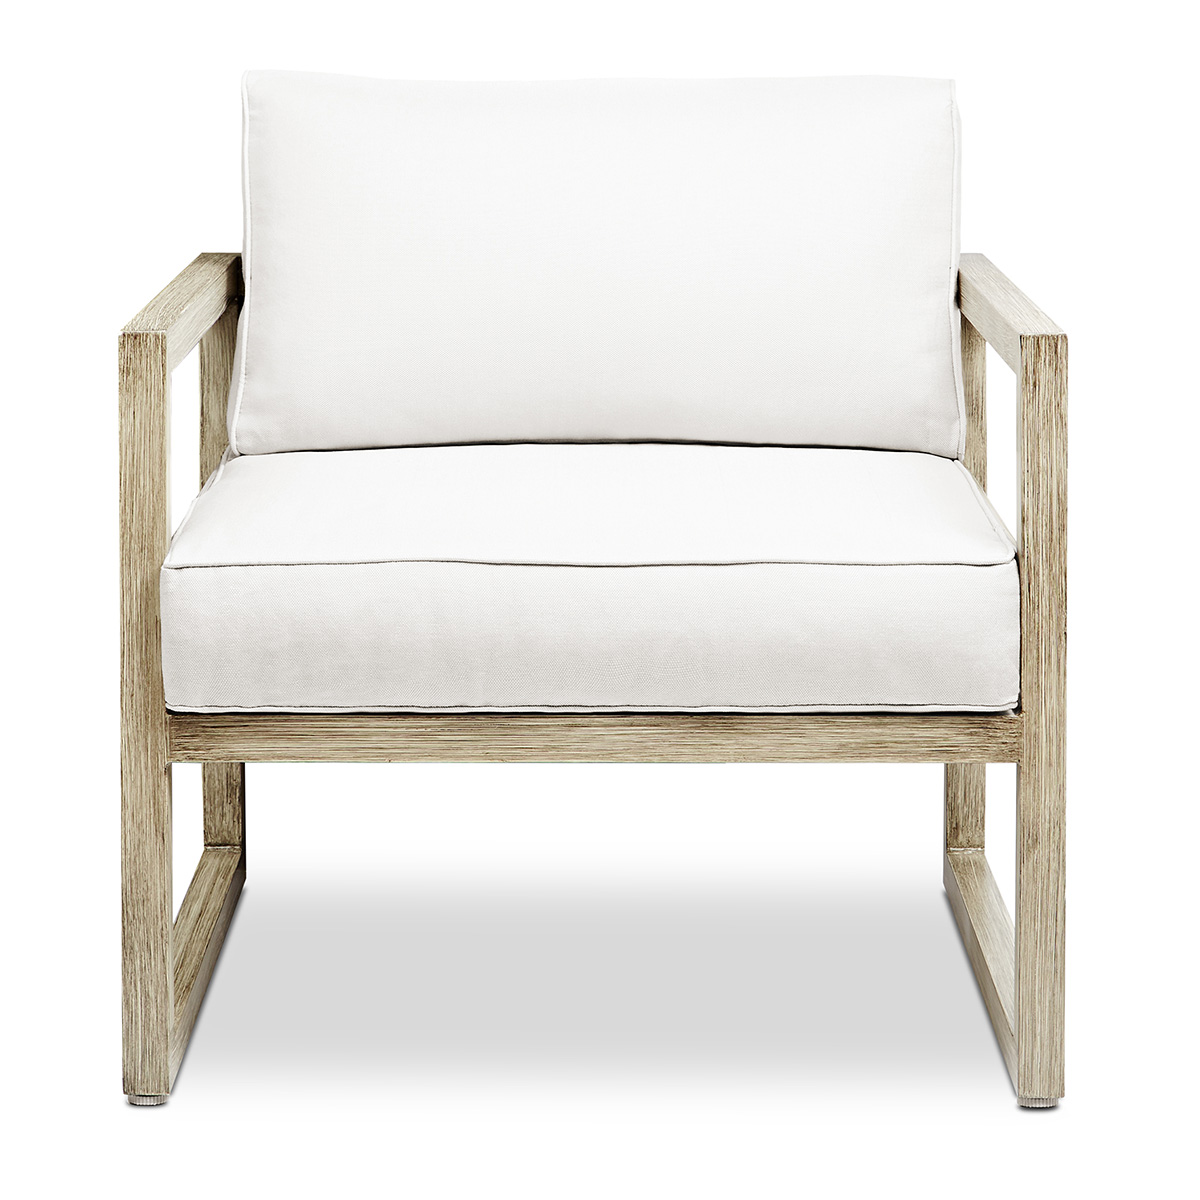 Excellent Monaco Outdoor Chairs In Brushed Antique White Aluminum W Weather Resistant Fabric Cushions Set Of By Real Flame Inzonedesignstudio Interior Chair Design Inzonedesignstudiocom